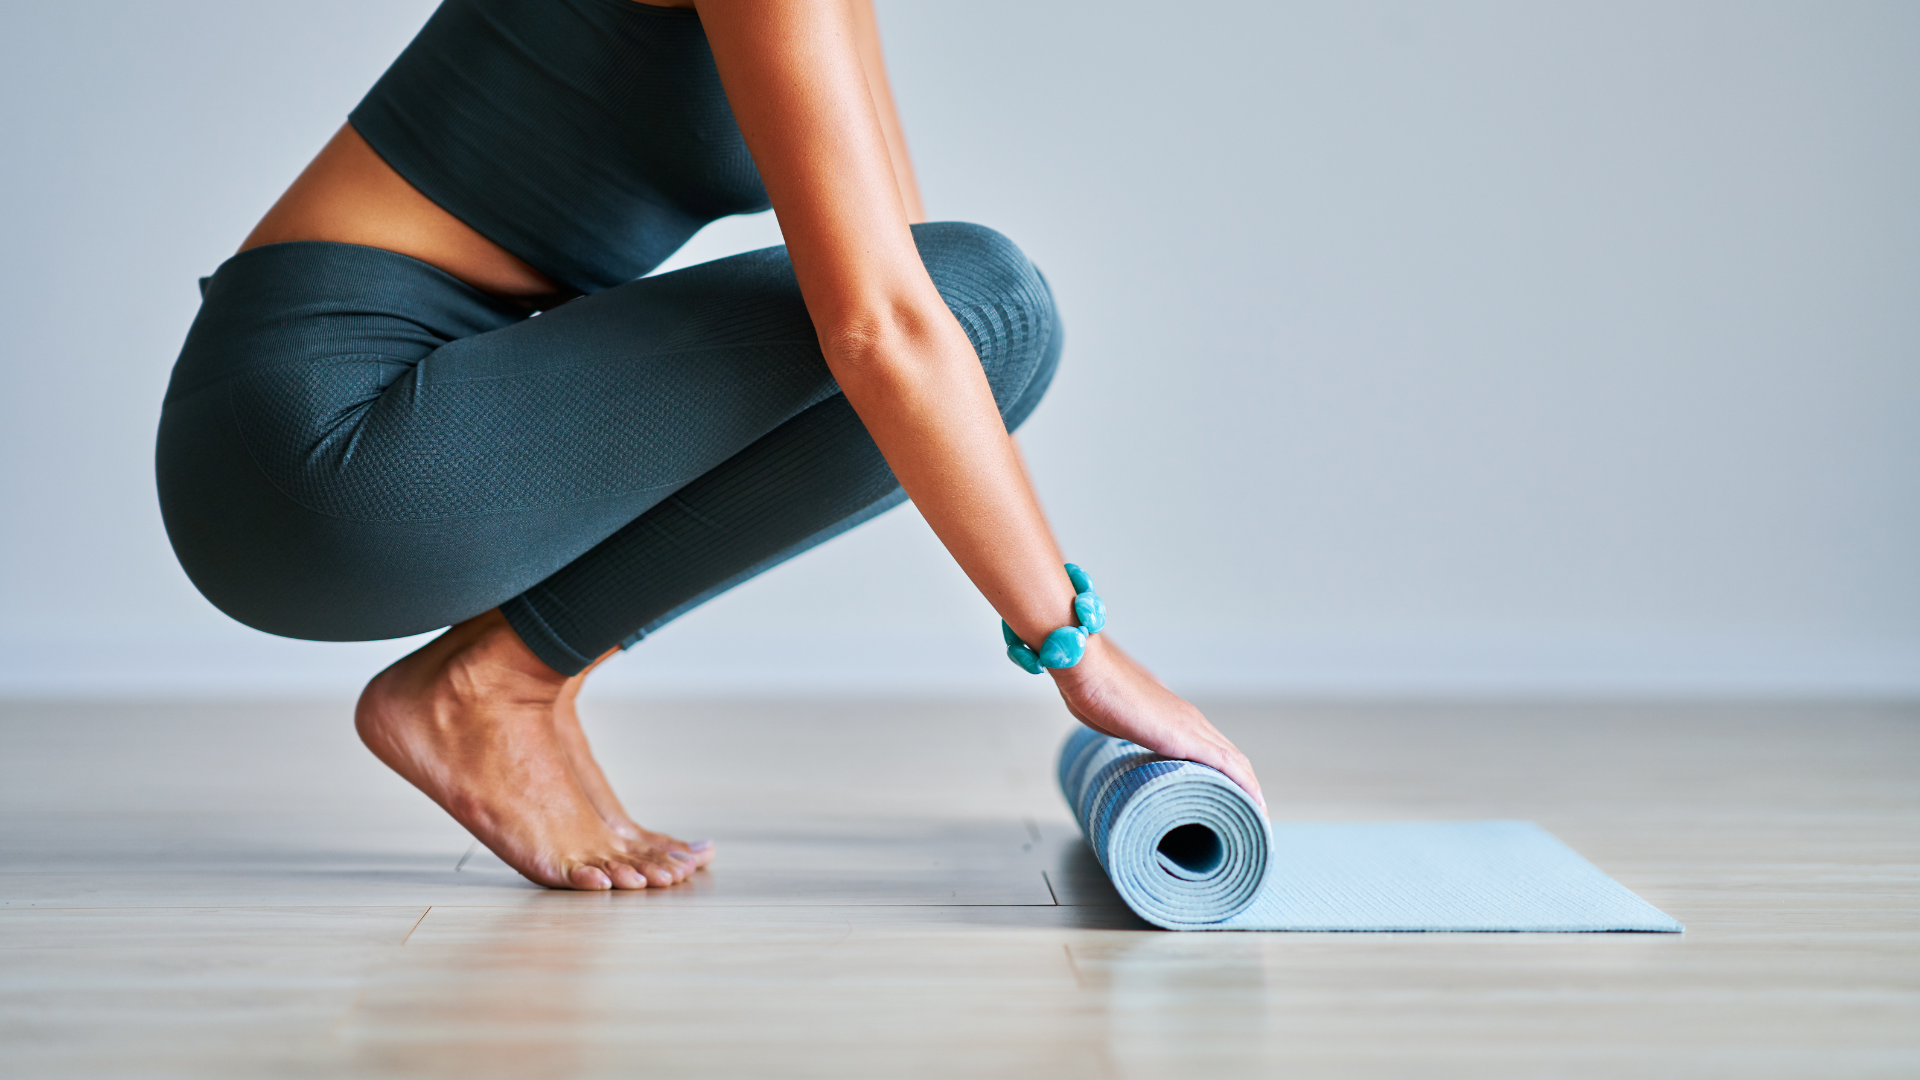 QUIET WORKOUTS YOU CAN DO IN YOUR APARTMENT